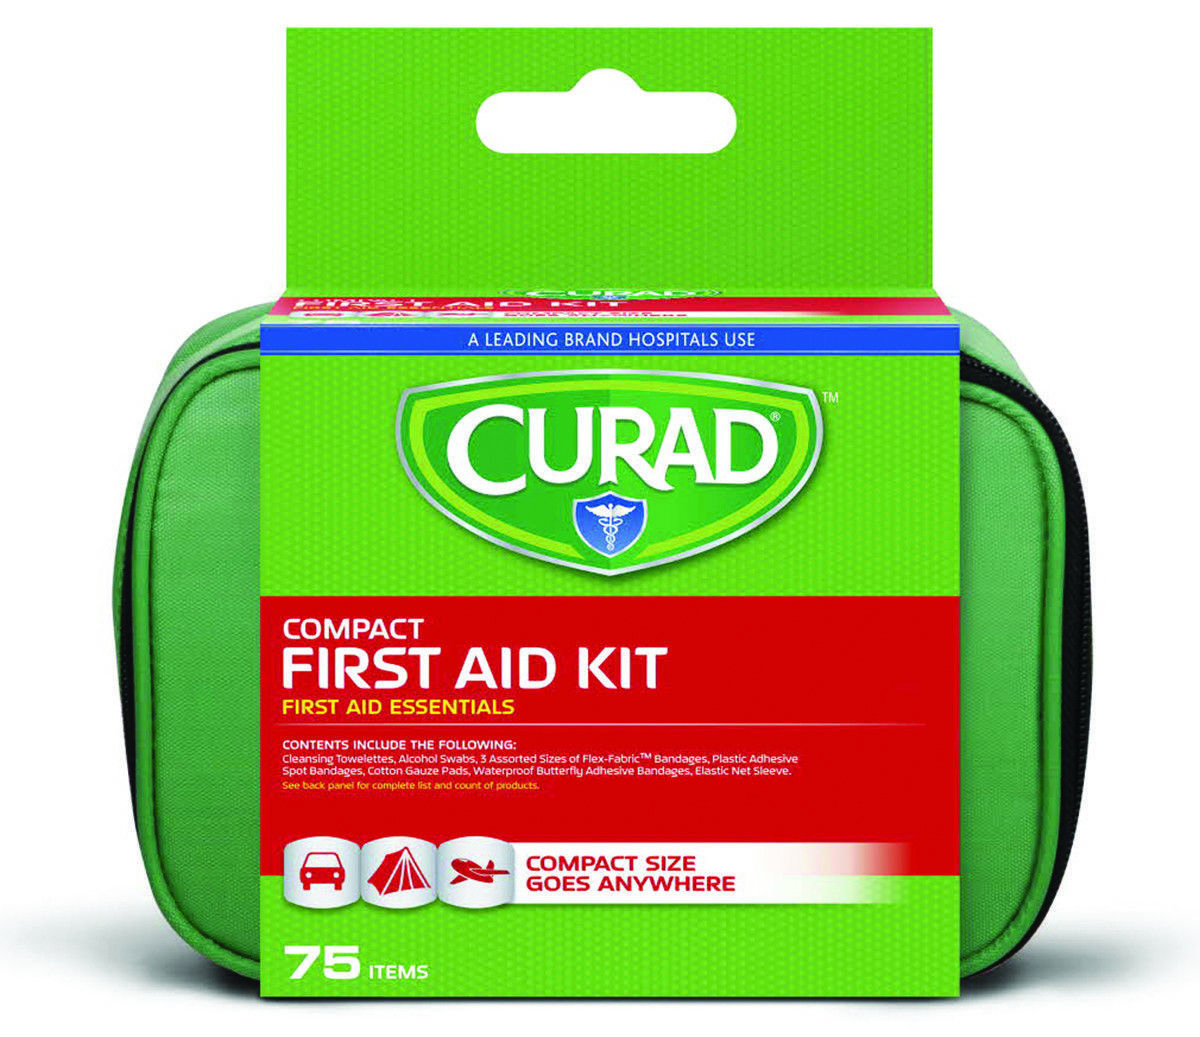 curad 70 piece compact first aid kit 5 1 2 and 50 similar items